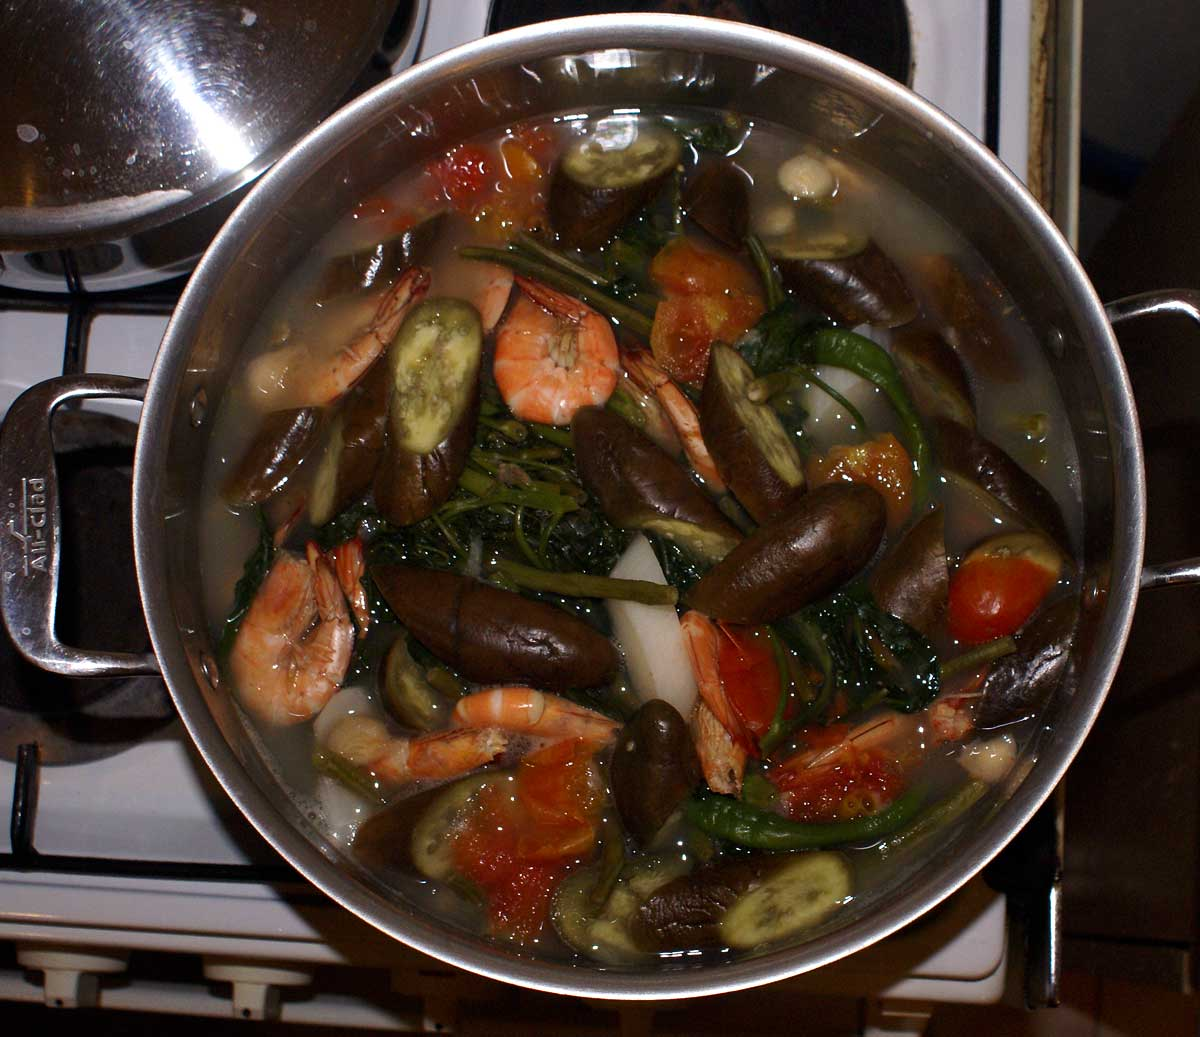 Sinigang with shrimp and eggplant.